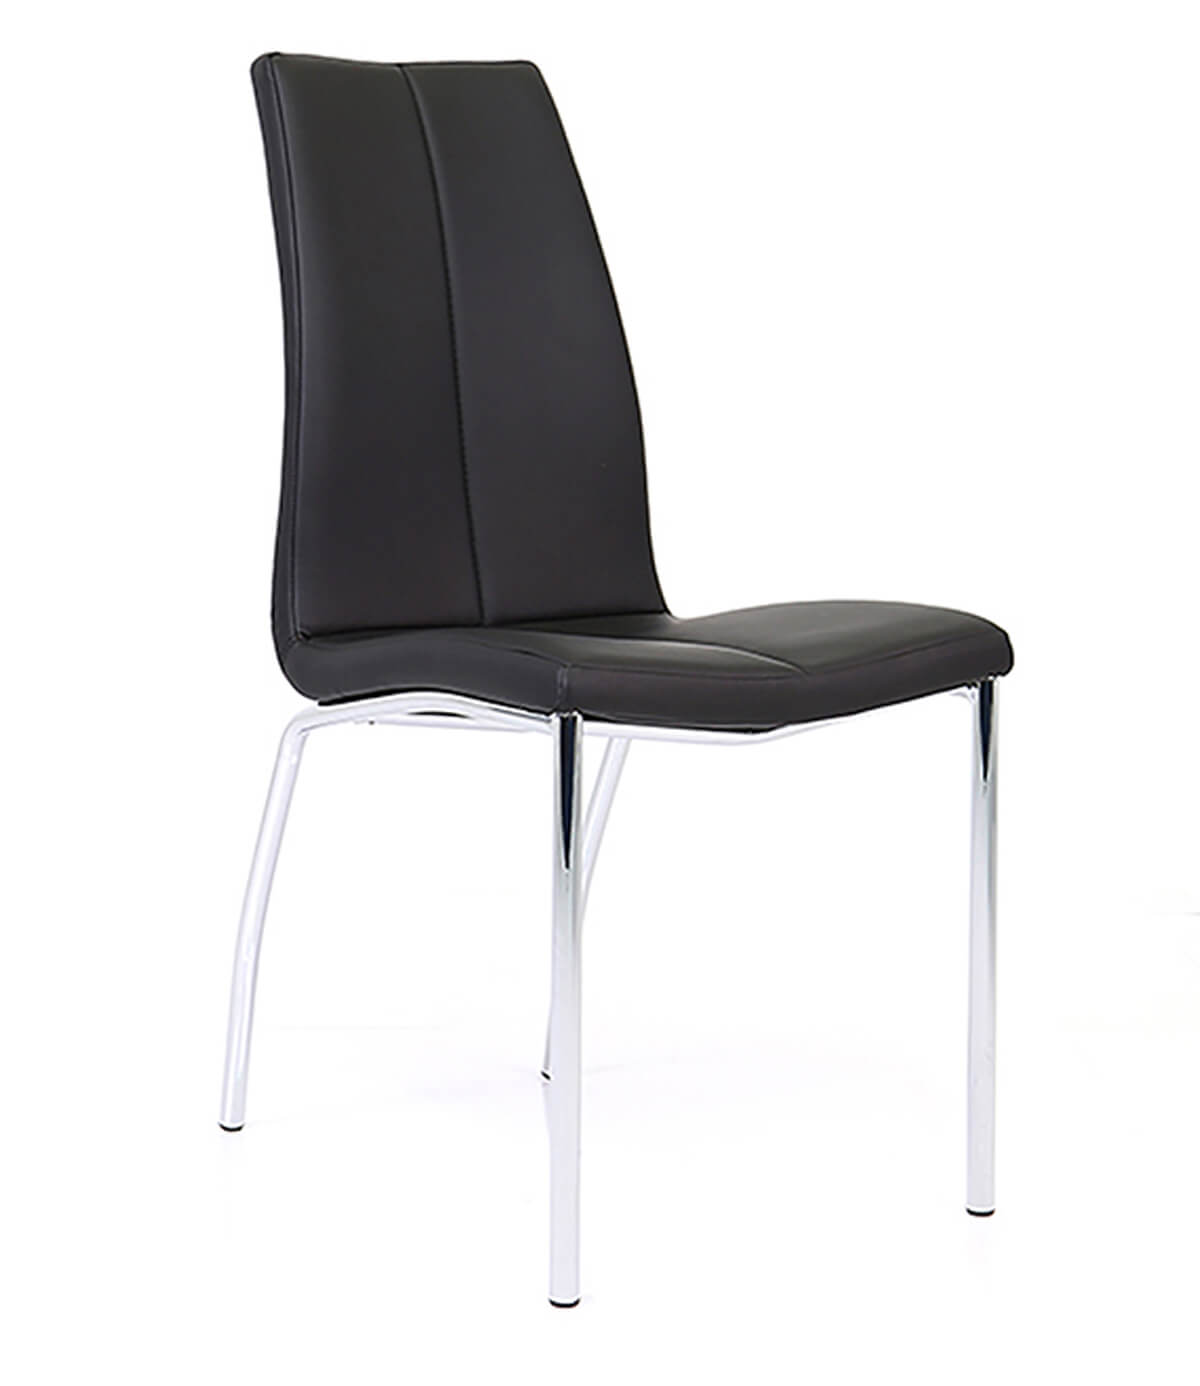 Manchester furniture supplies for Modern leather dining chairs uk